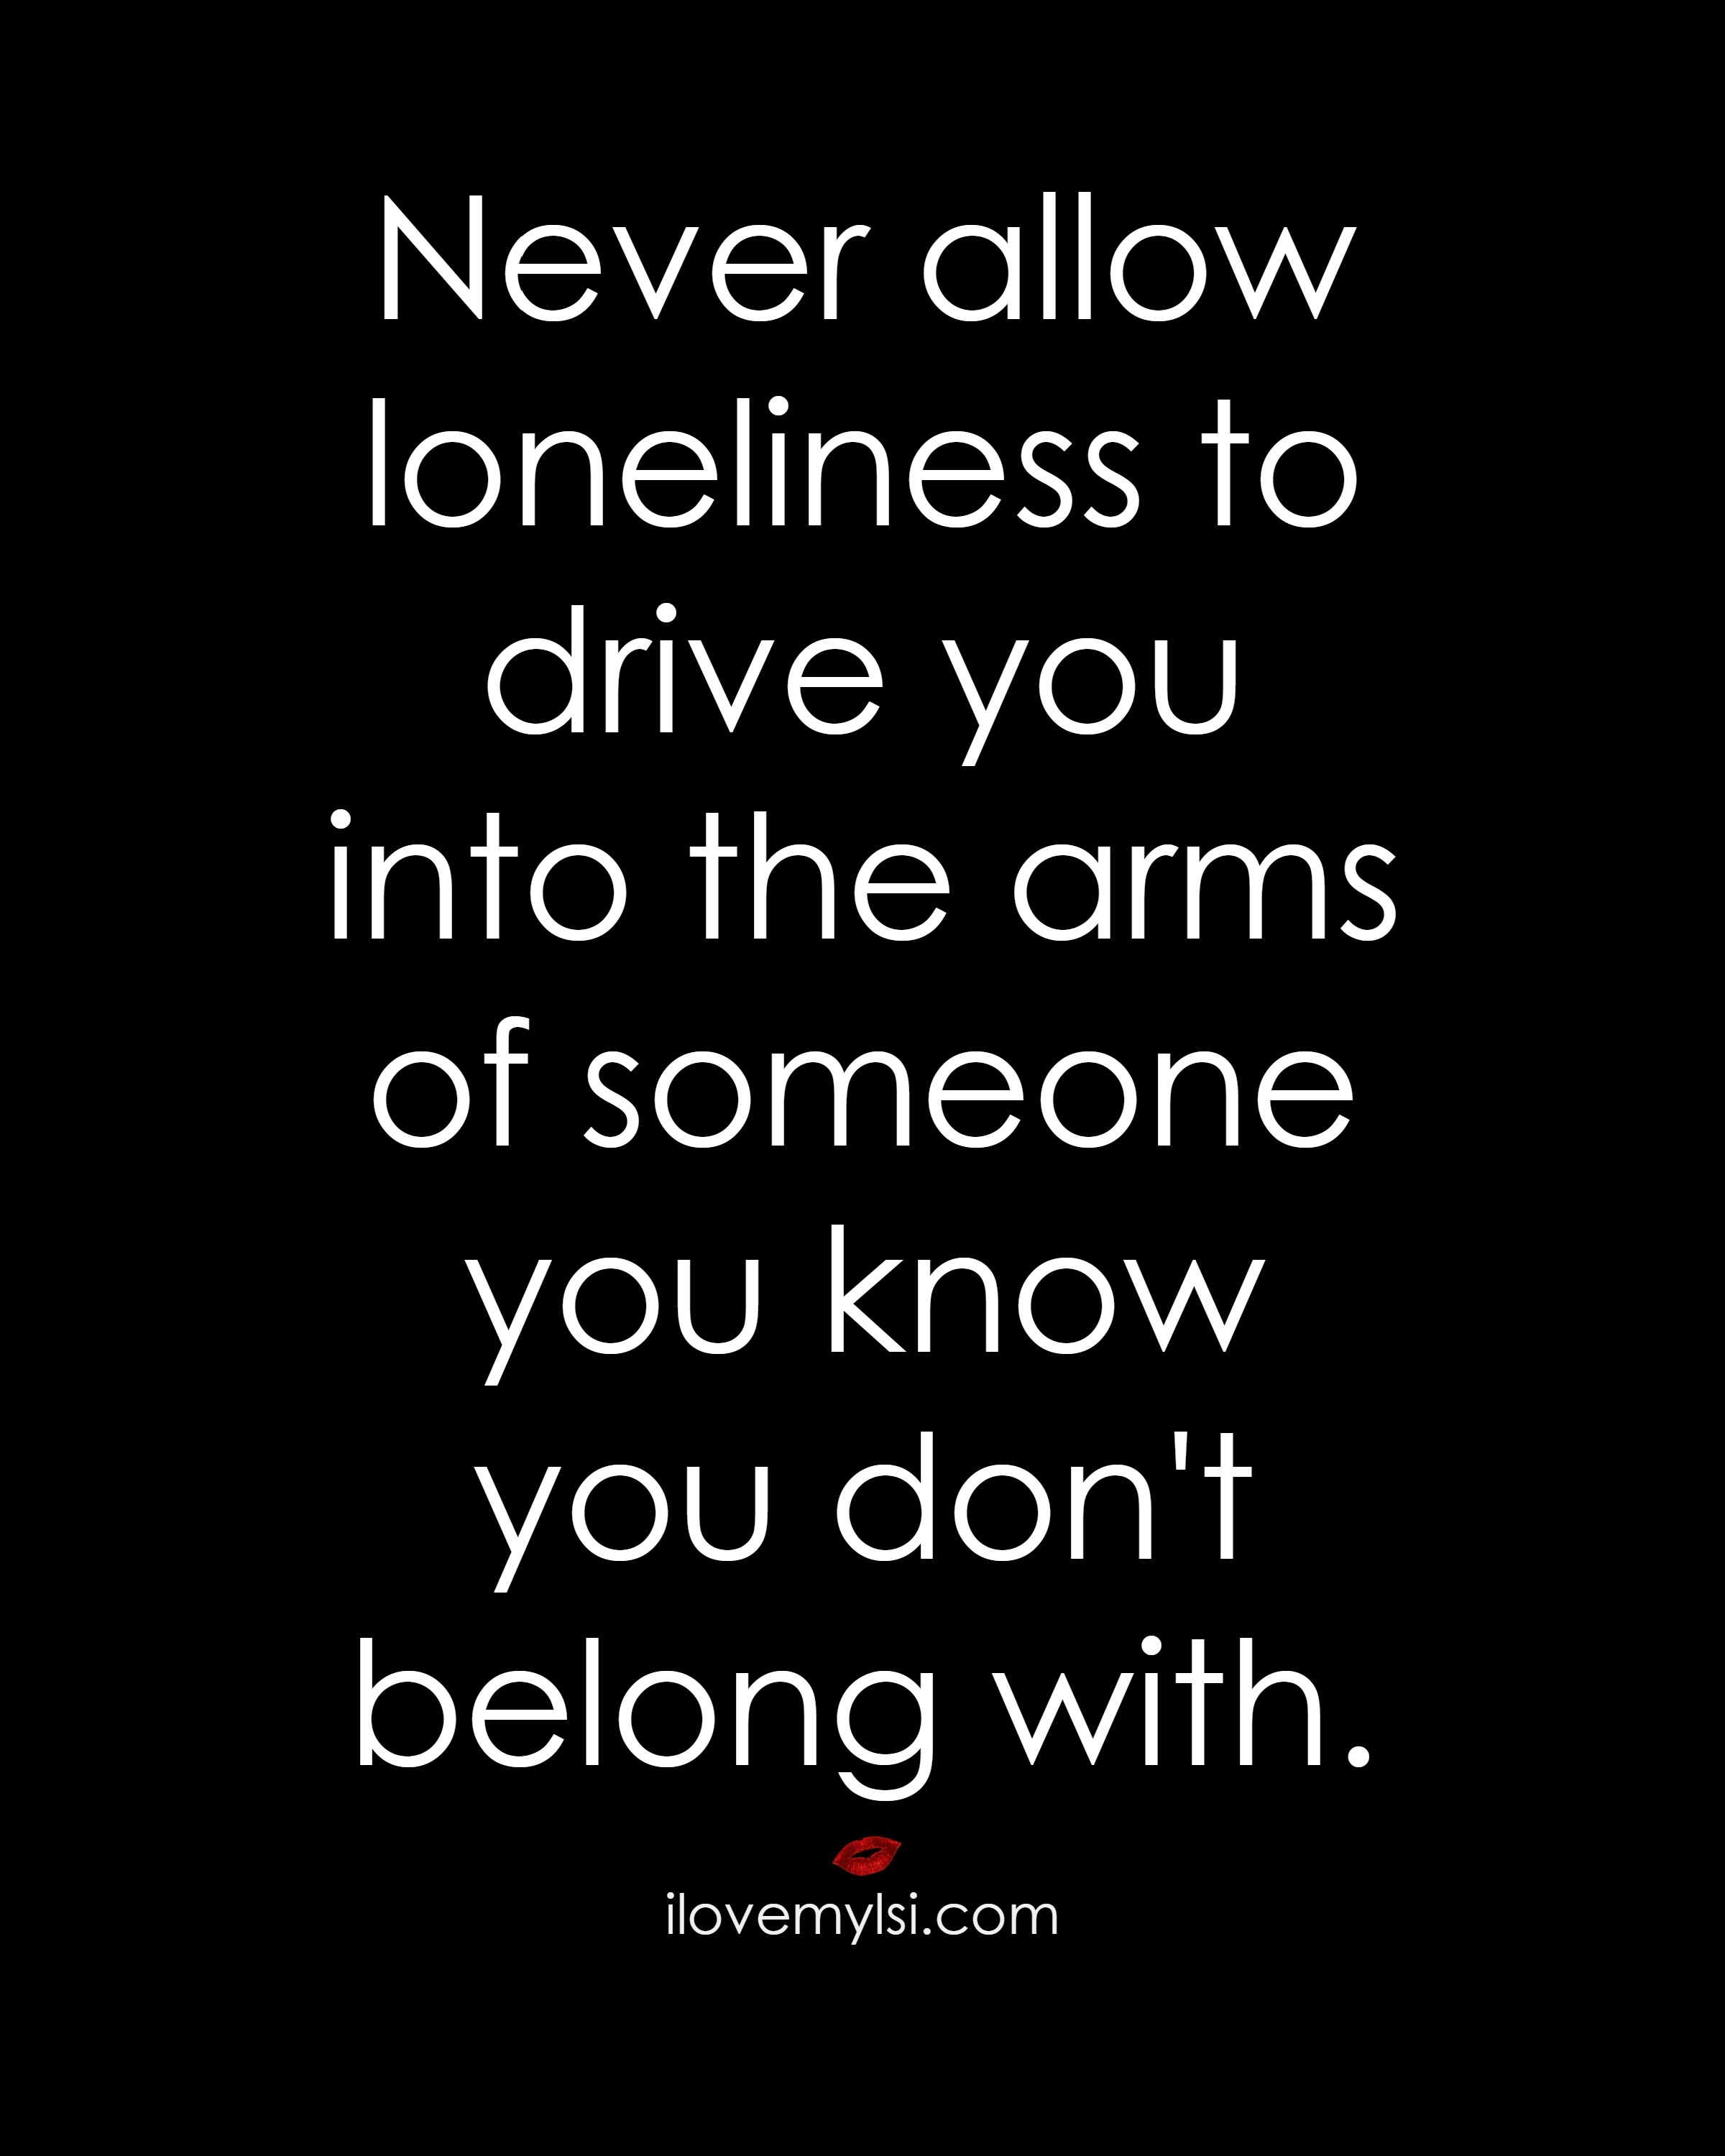 I Love You Quotes: Never Allow Loneliness To Drive You